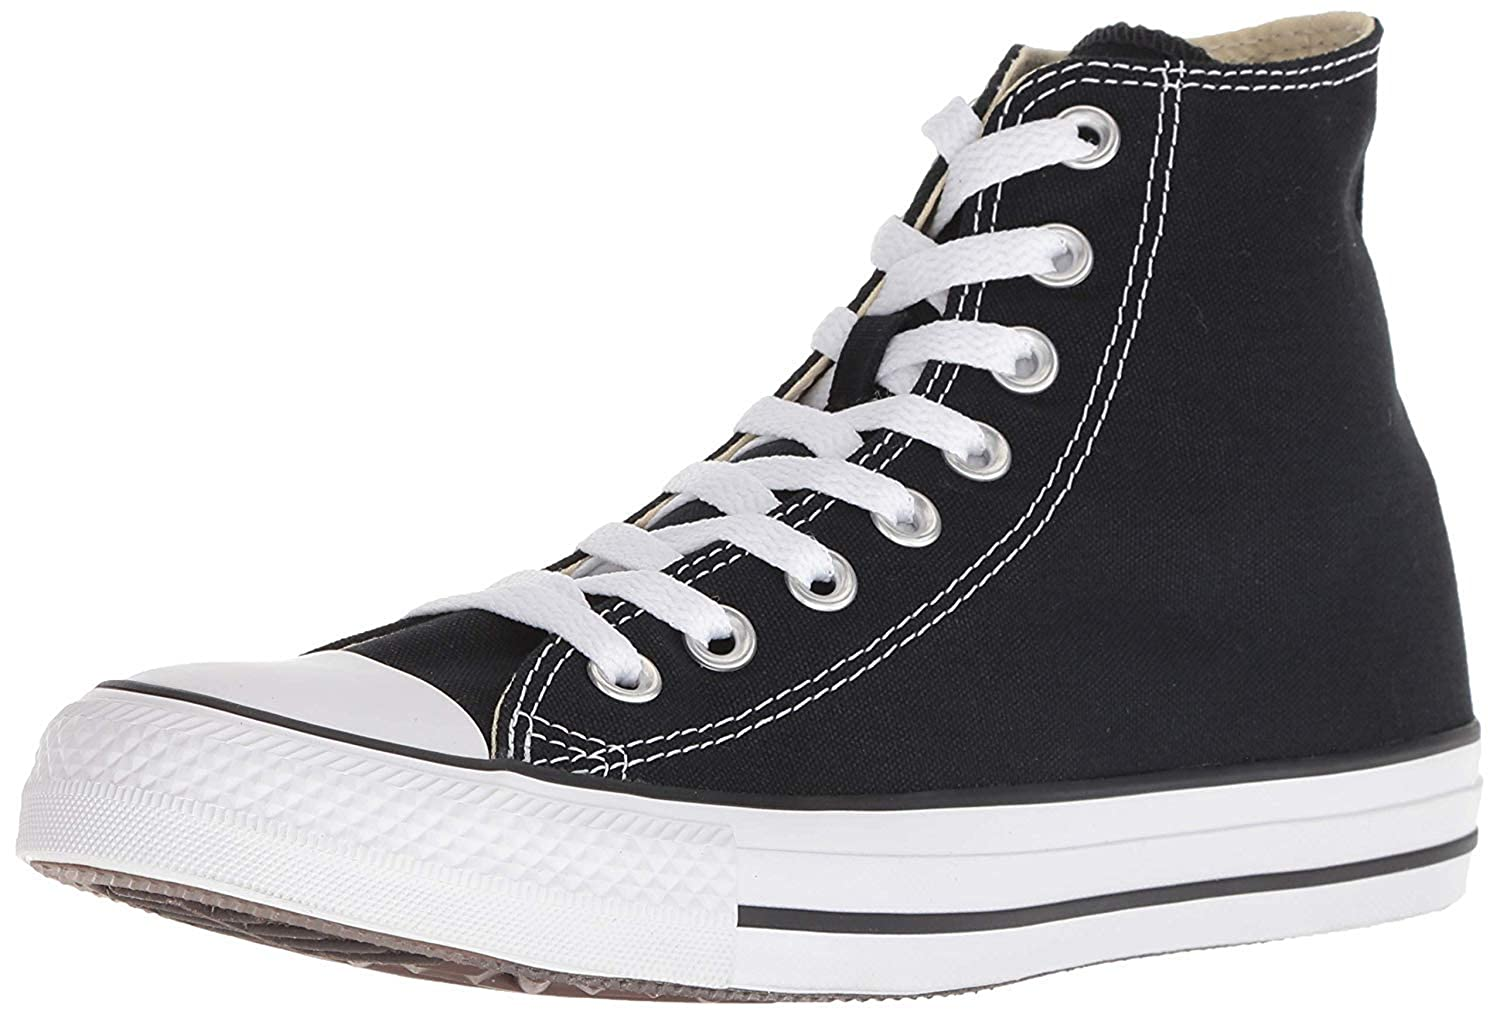 super popular c697c 8843d Amazon.com   Converse CT All Star Hi Black Canvas Mens Trainers Size 9.5 UK    Fashion Sneakers